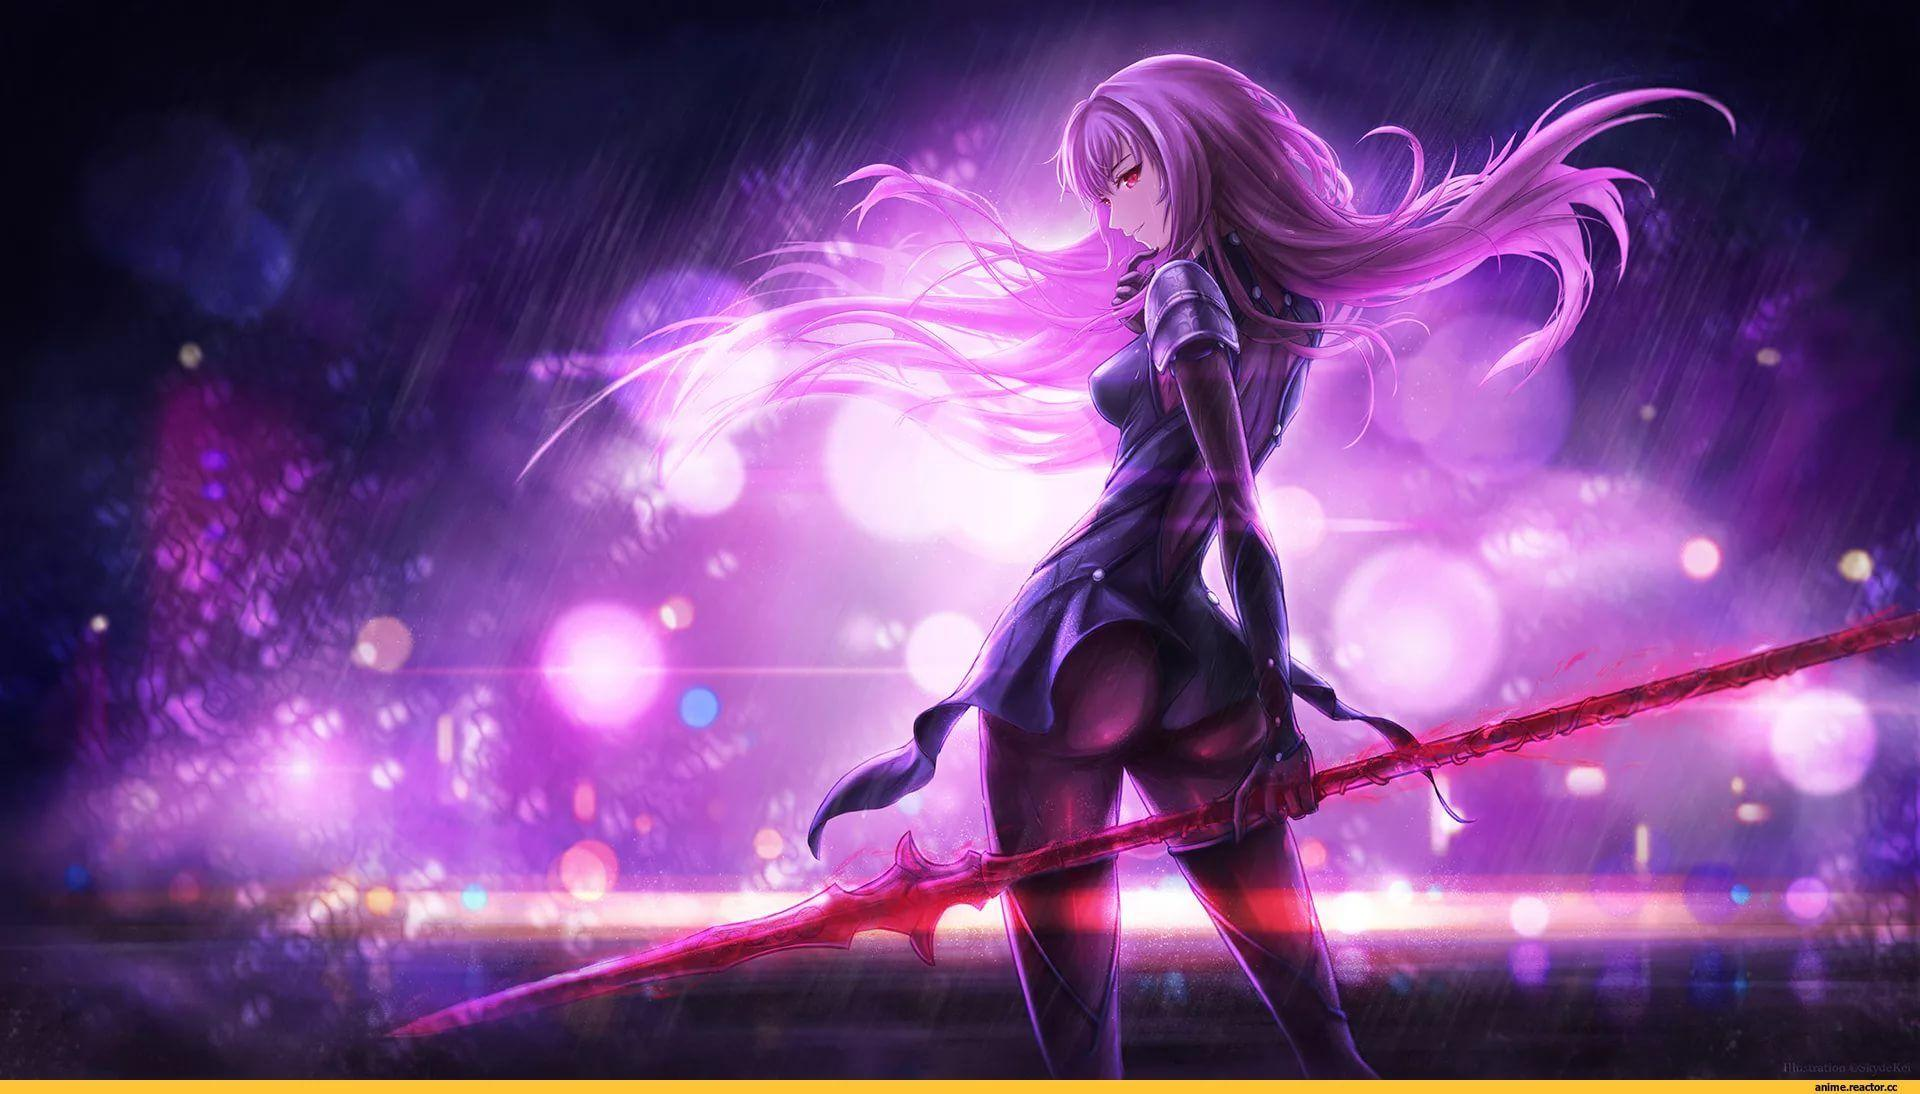 Scathach Fate Grand Order HD Wallpapers free